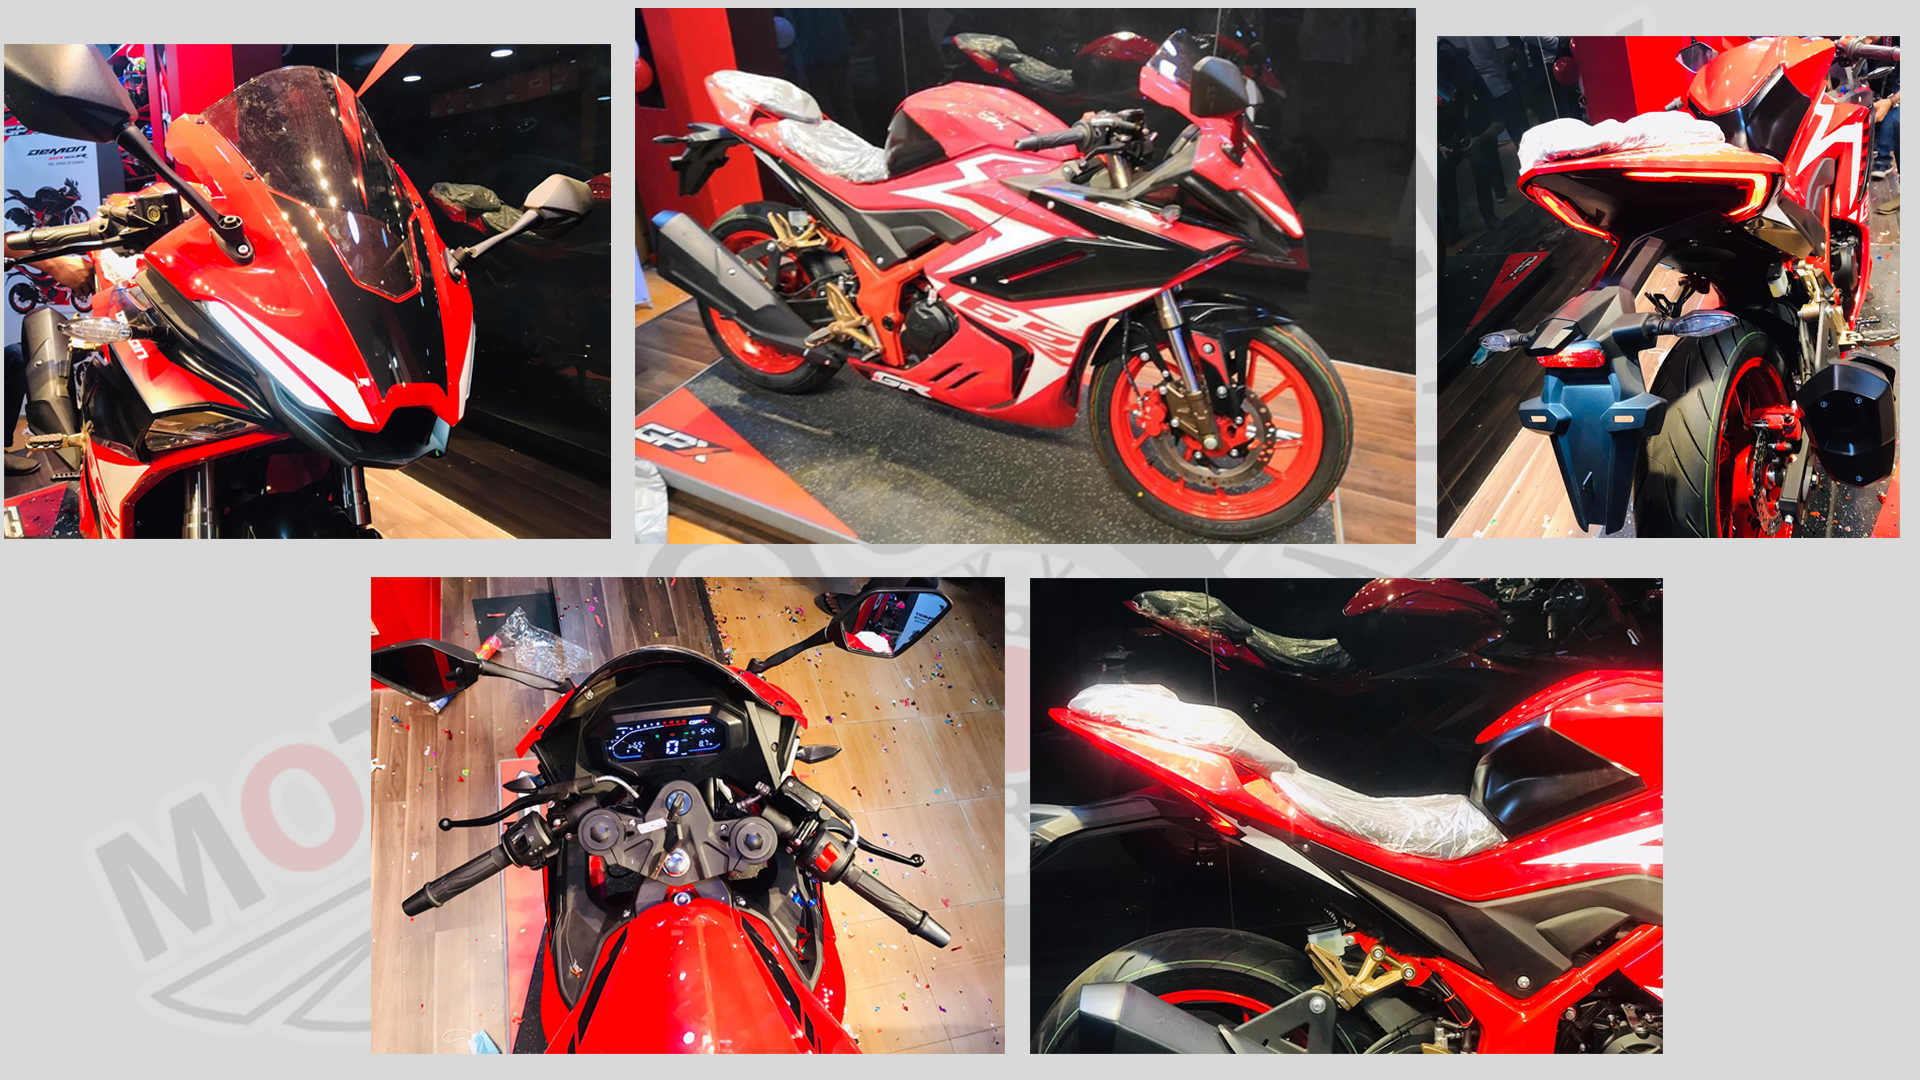 GPX Demon GR165R Design & looks